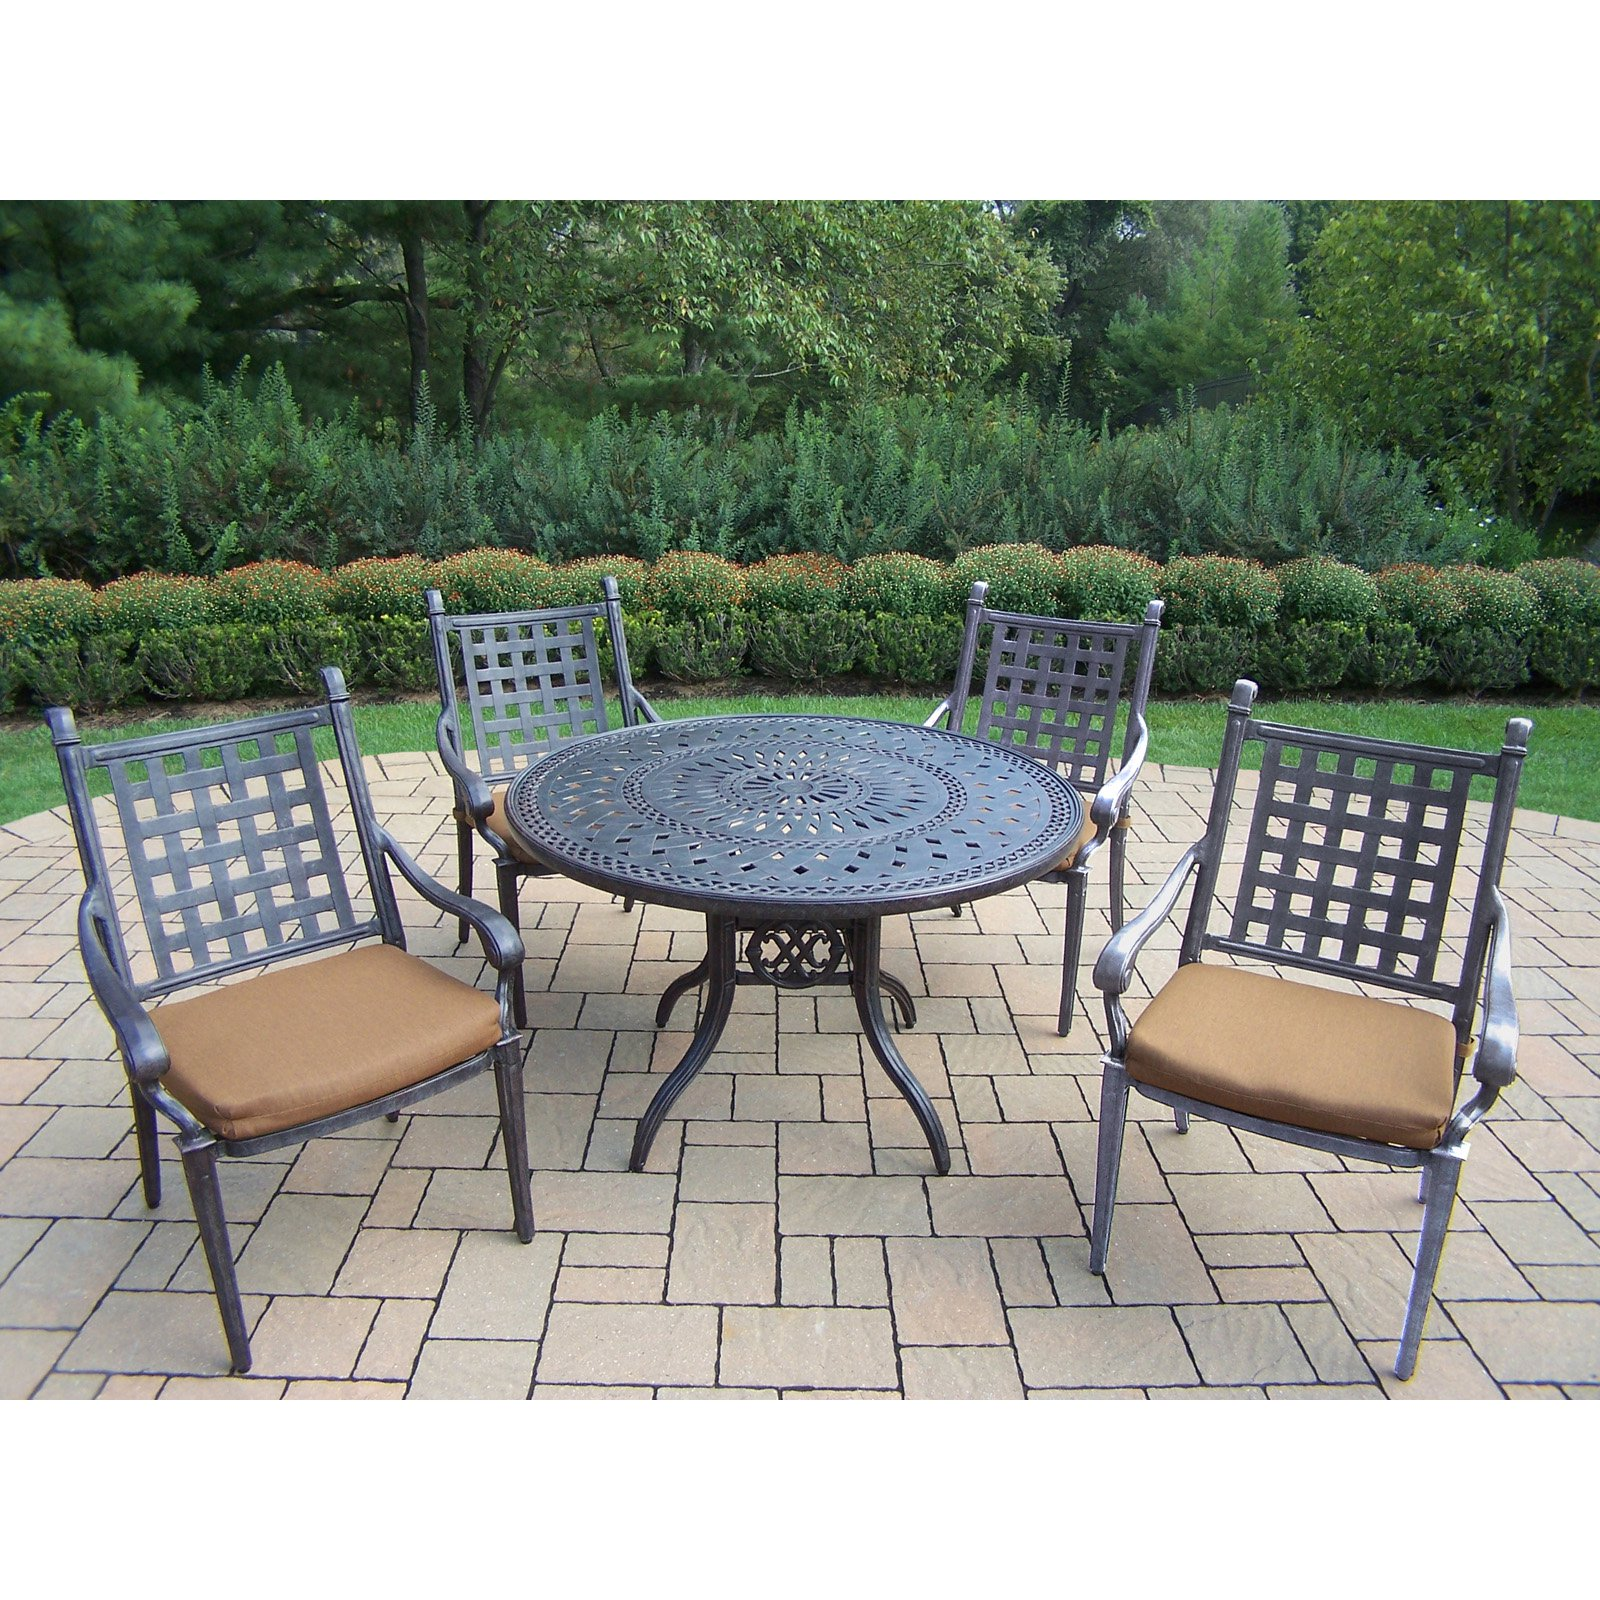 Oakland Living Belmont 5 Piece Round Patio Dining Set